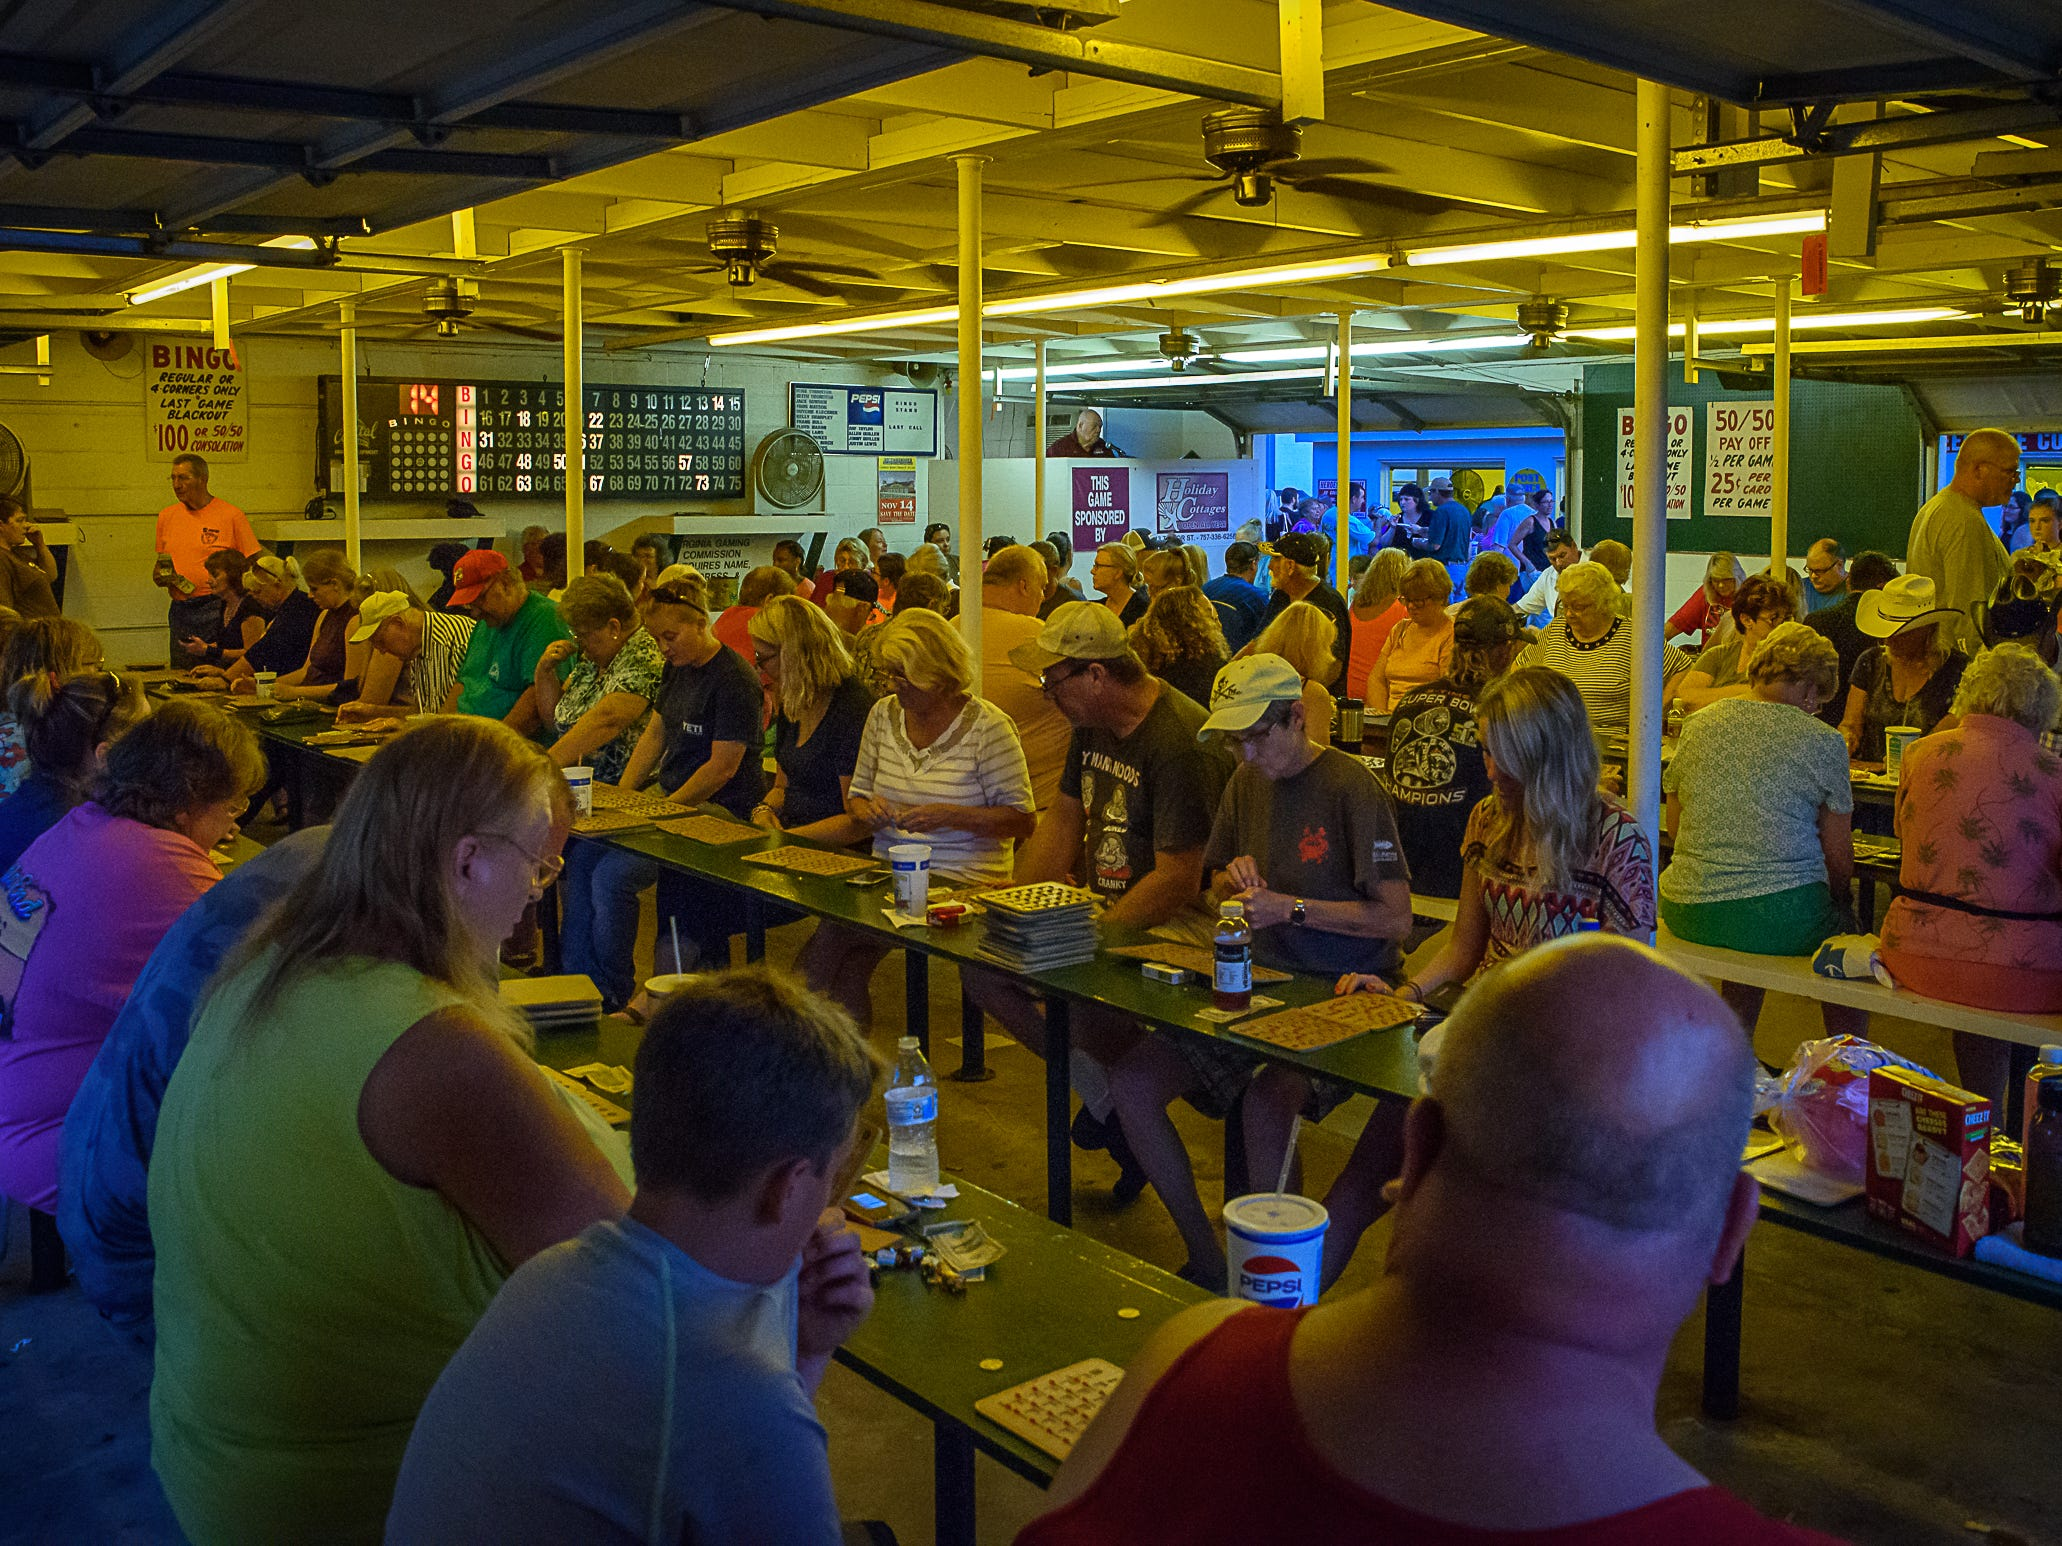 Bingo is always a popular pastime at the Chincoteague Fireman's Carnival.